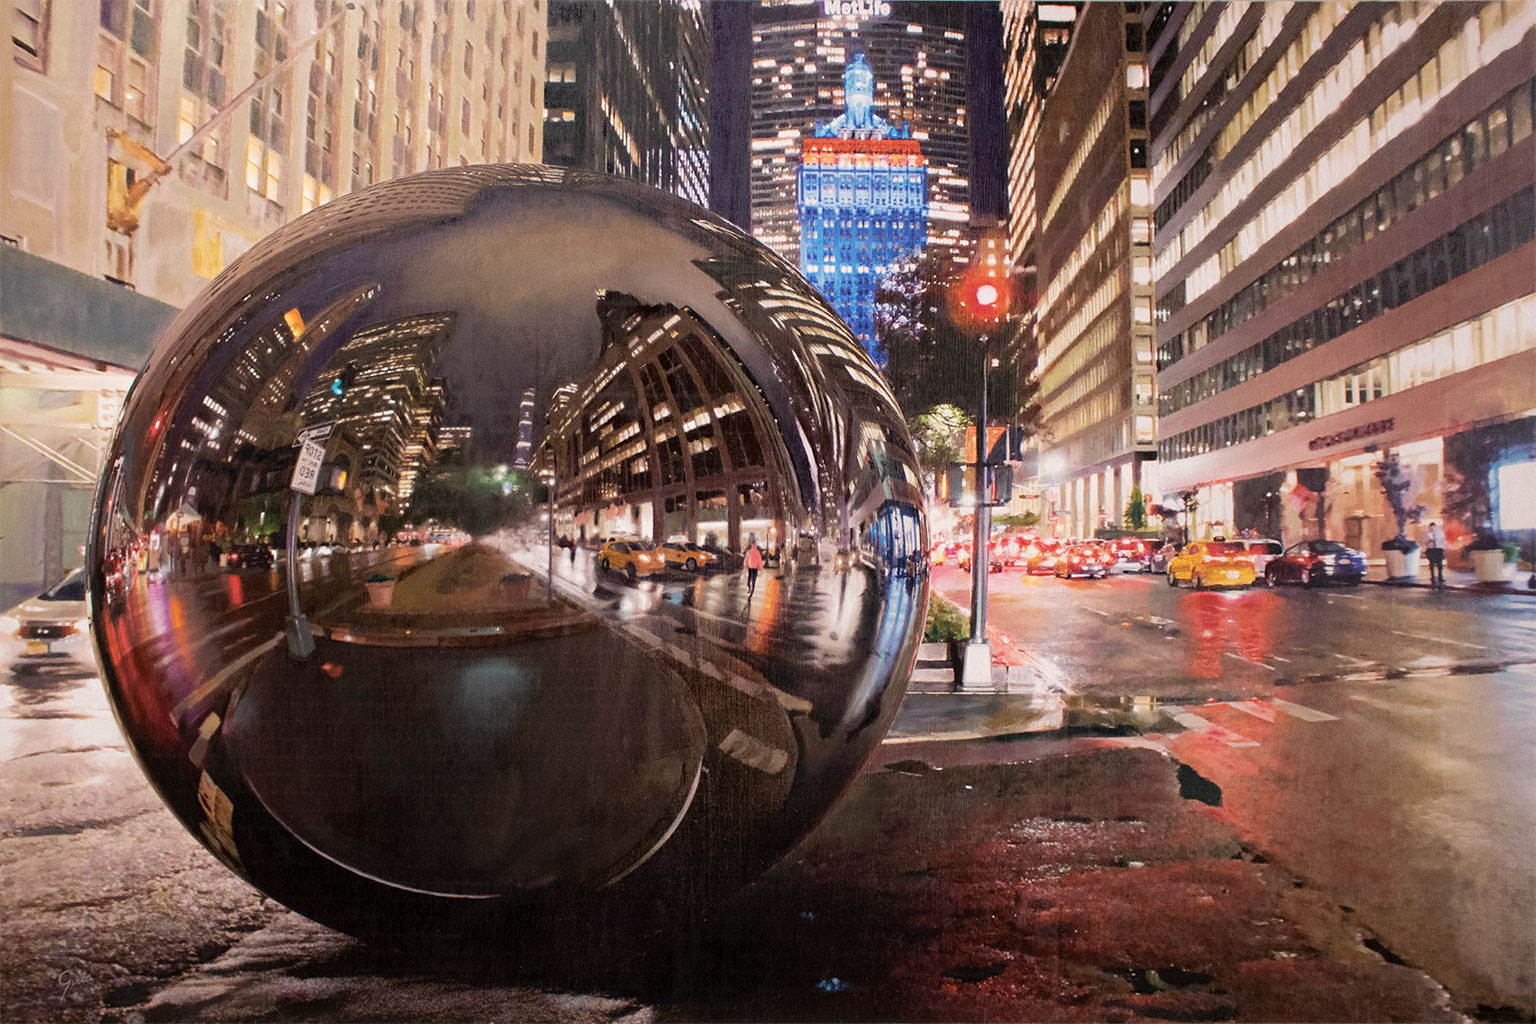 City's-soul-reflection-NY-NIGHT-2-100x150cm-1